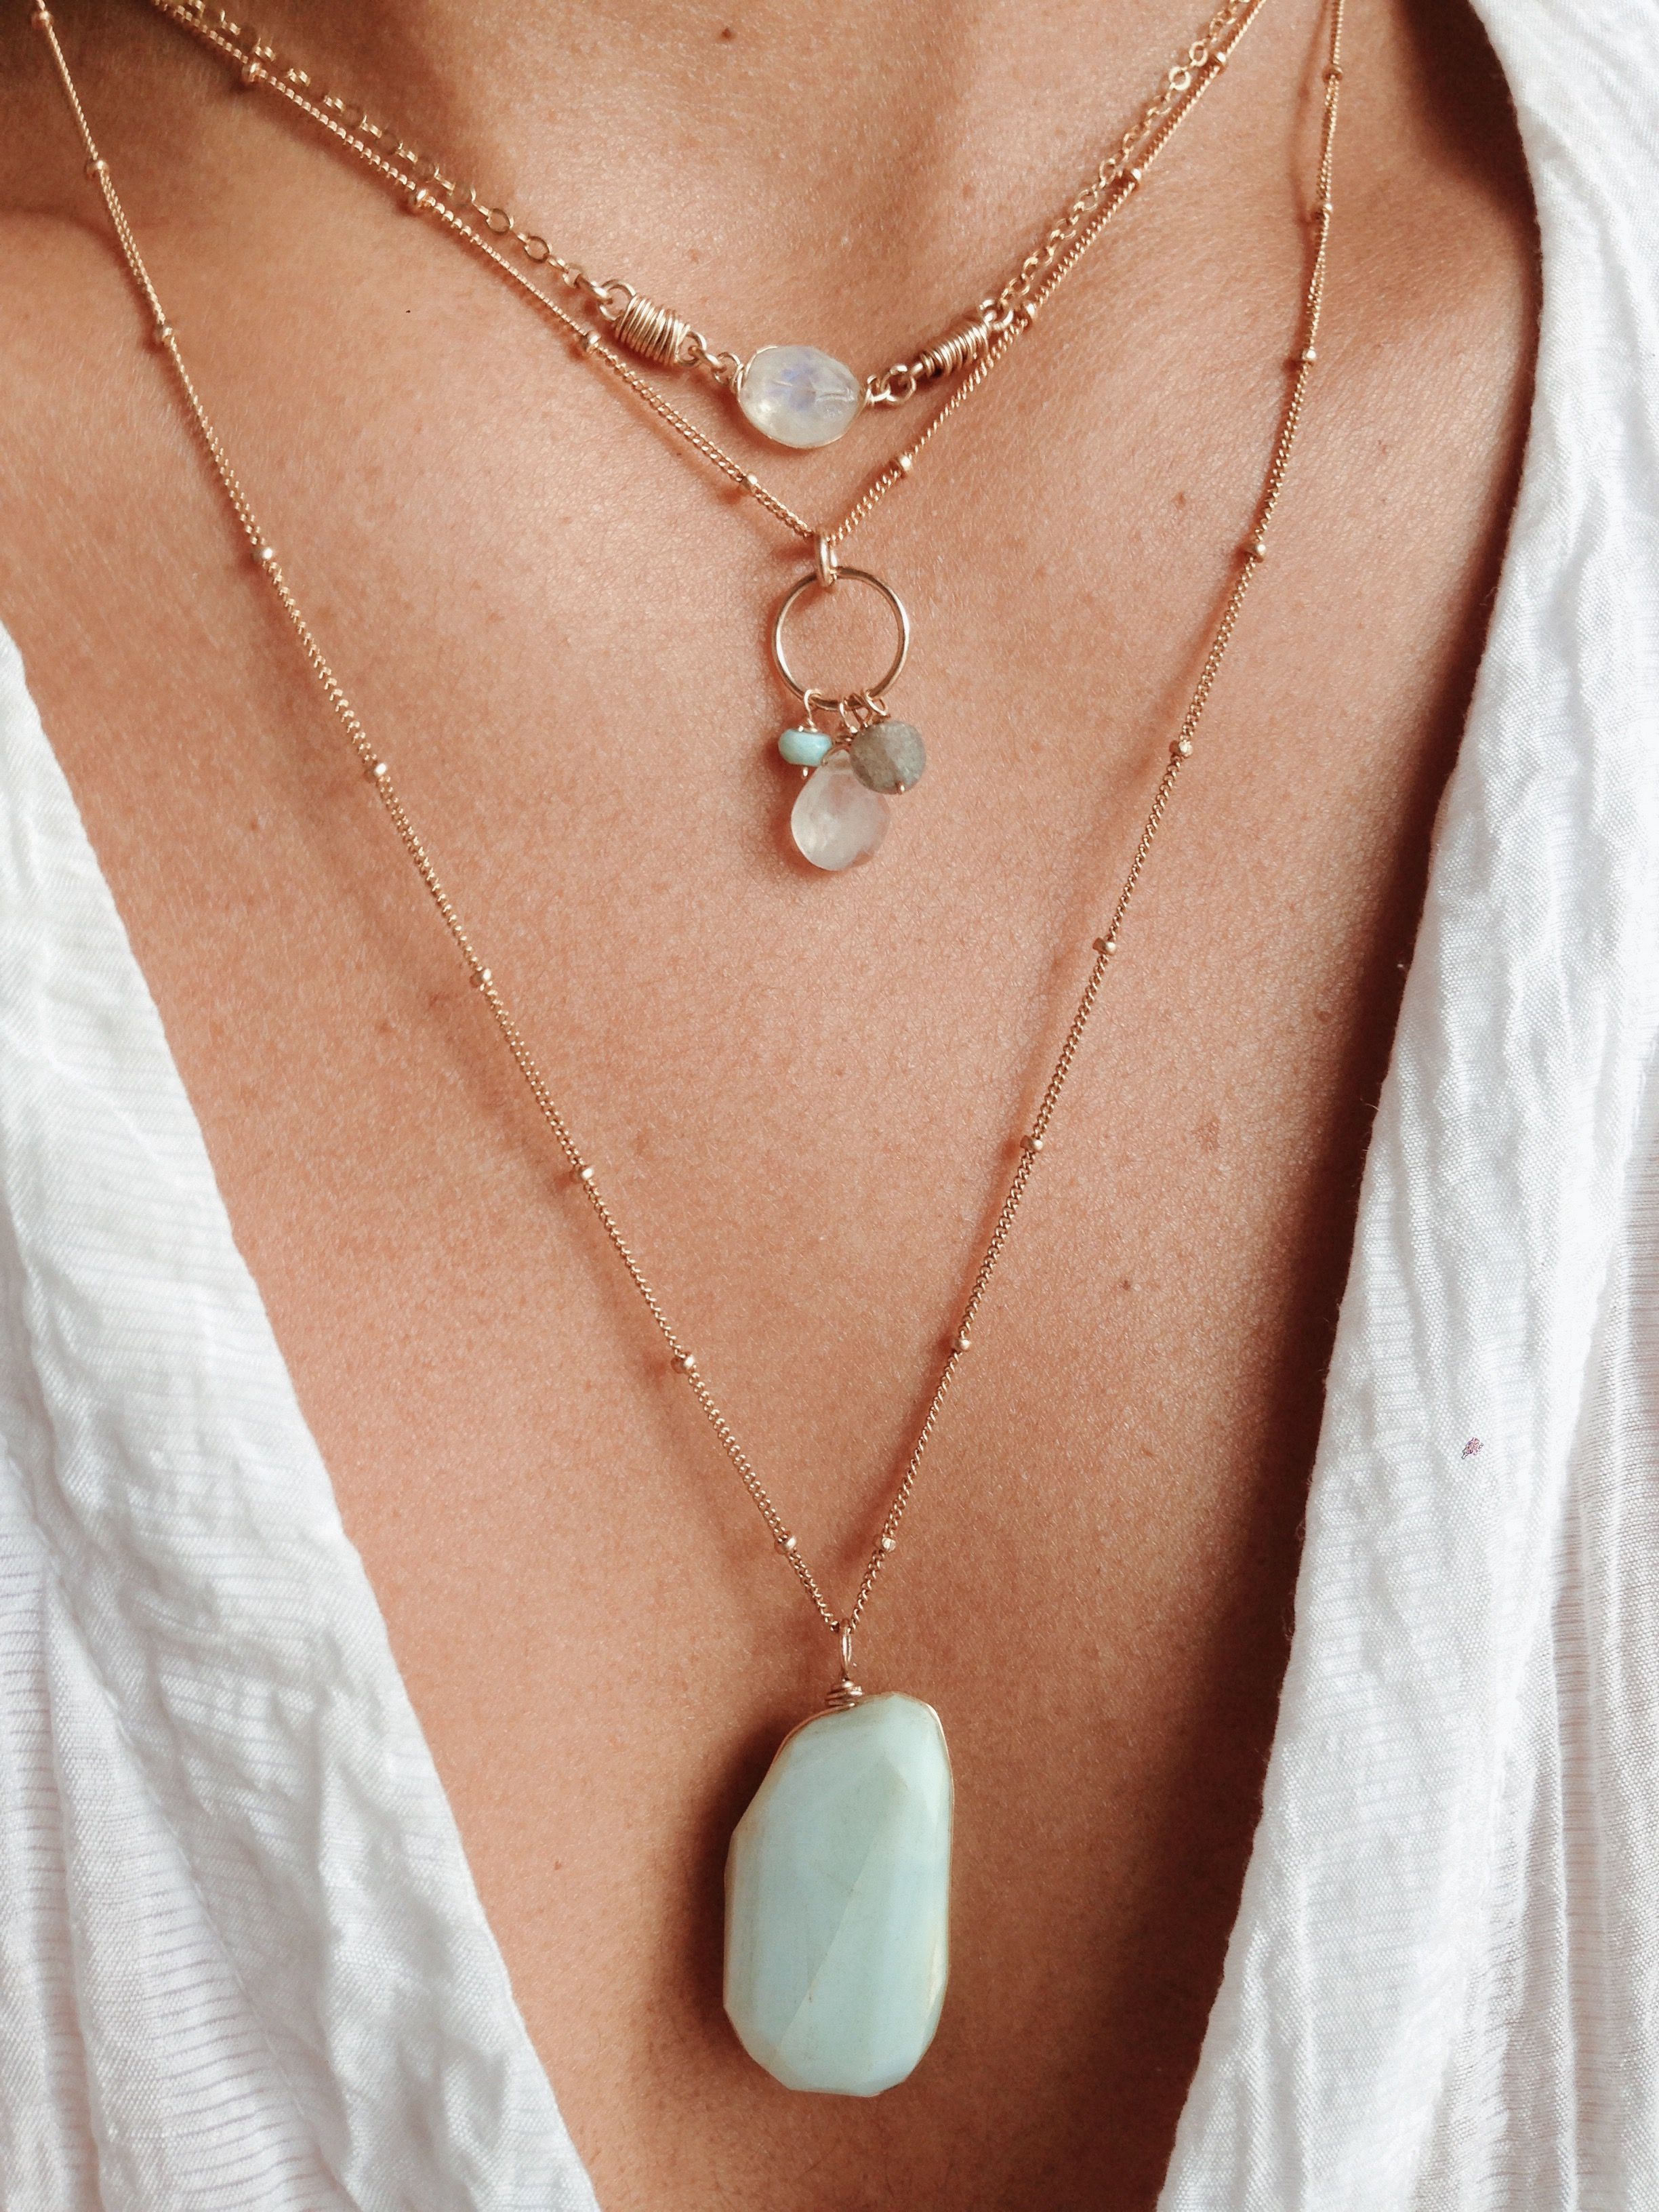 Handmade Macrame Charm Necklace White Choker Charm Necklace Lucky Protection Healing Coin Necklace Hippie Boho Style Choker Necklace